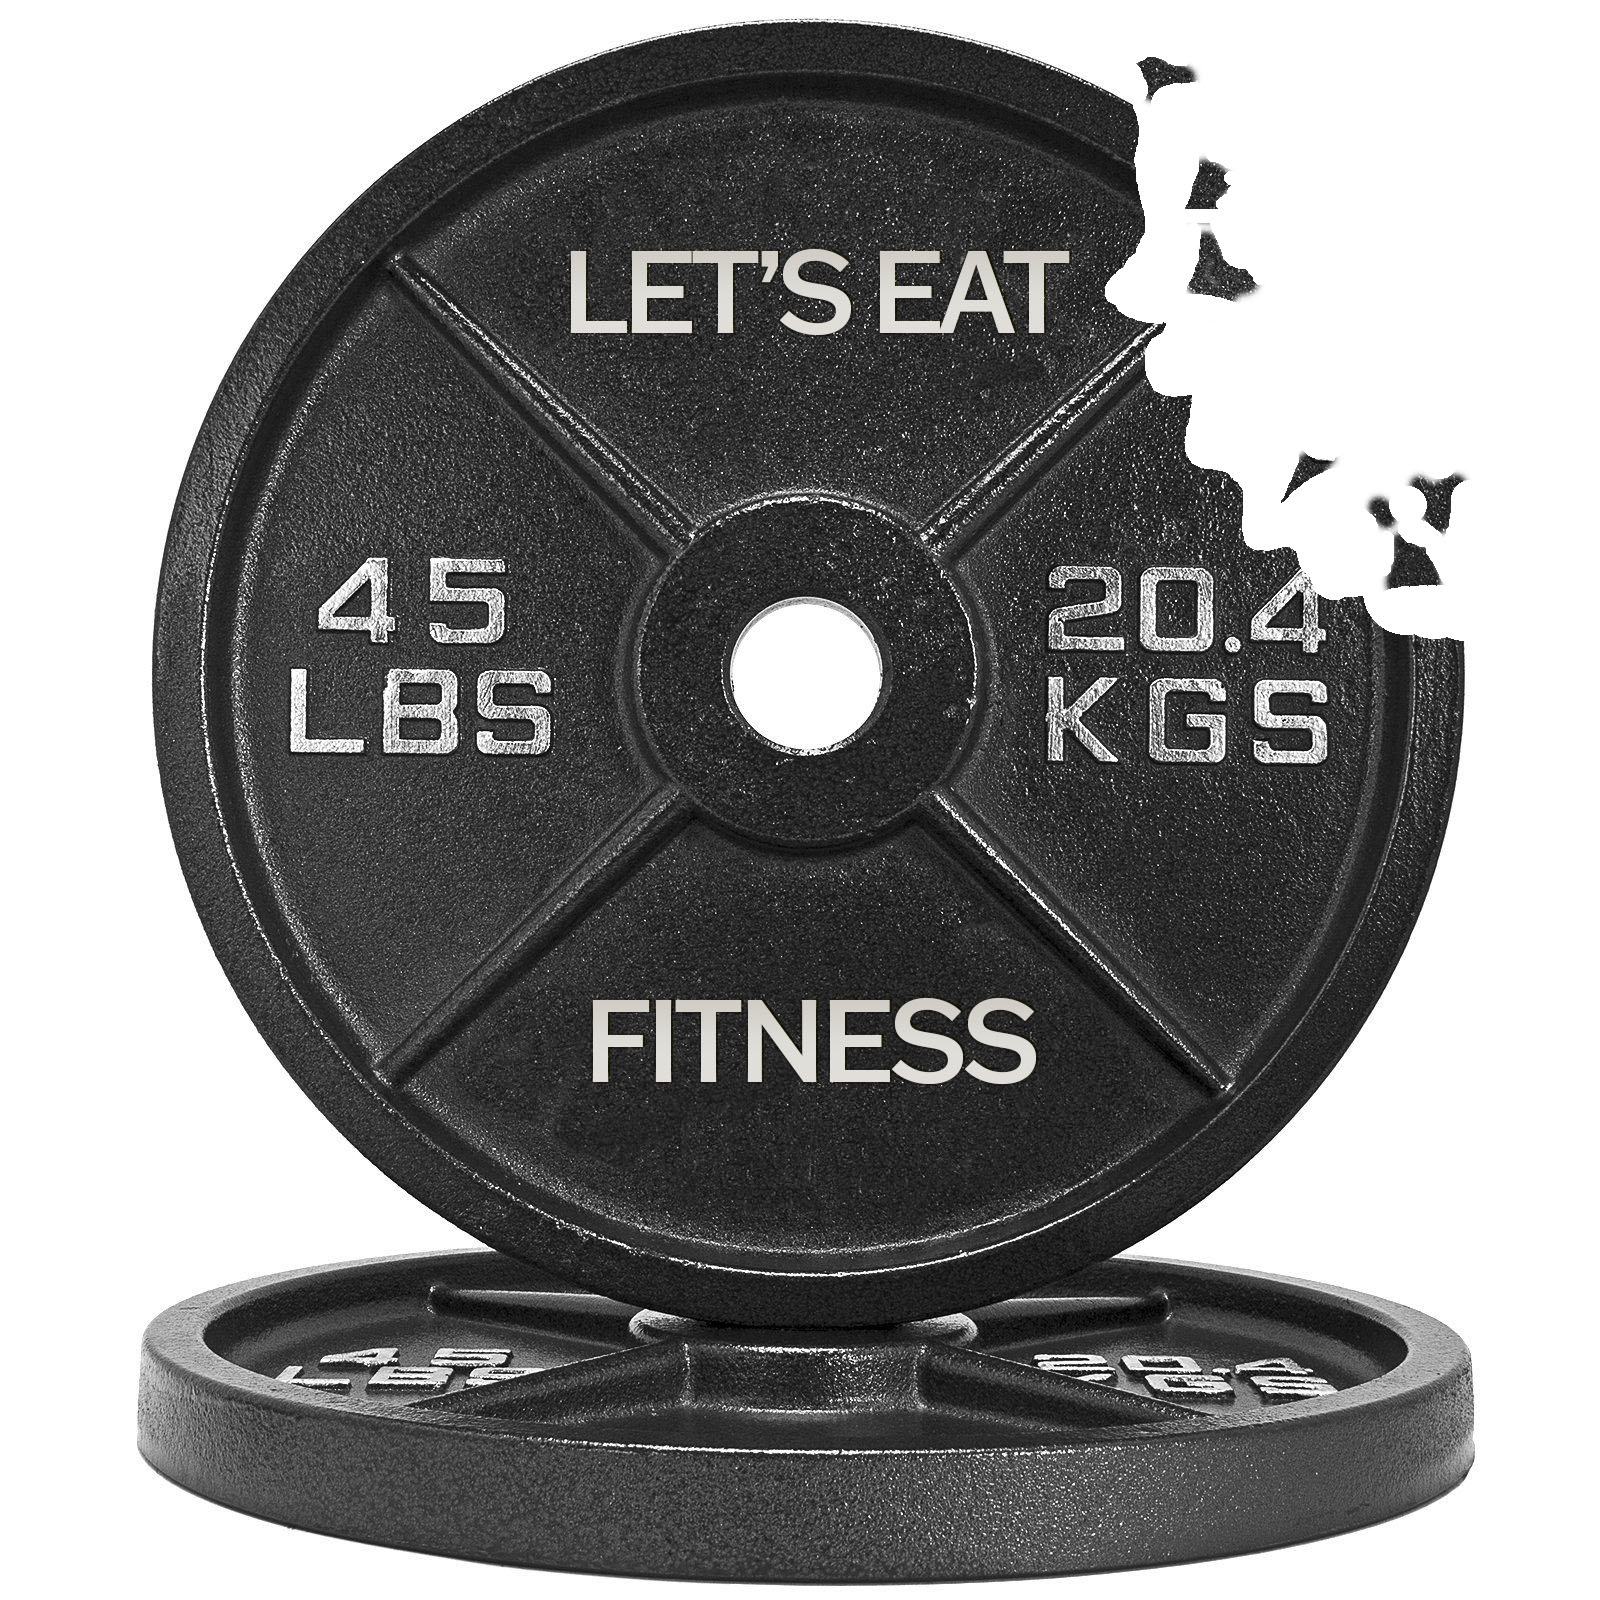 Lets Eat Fitness 45